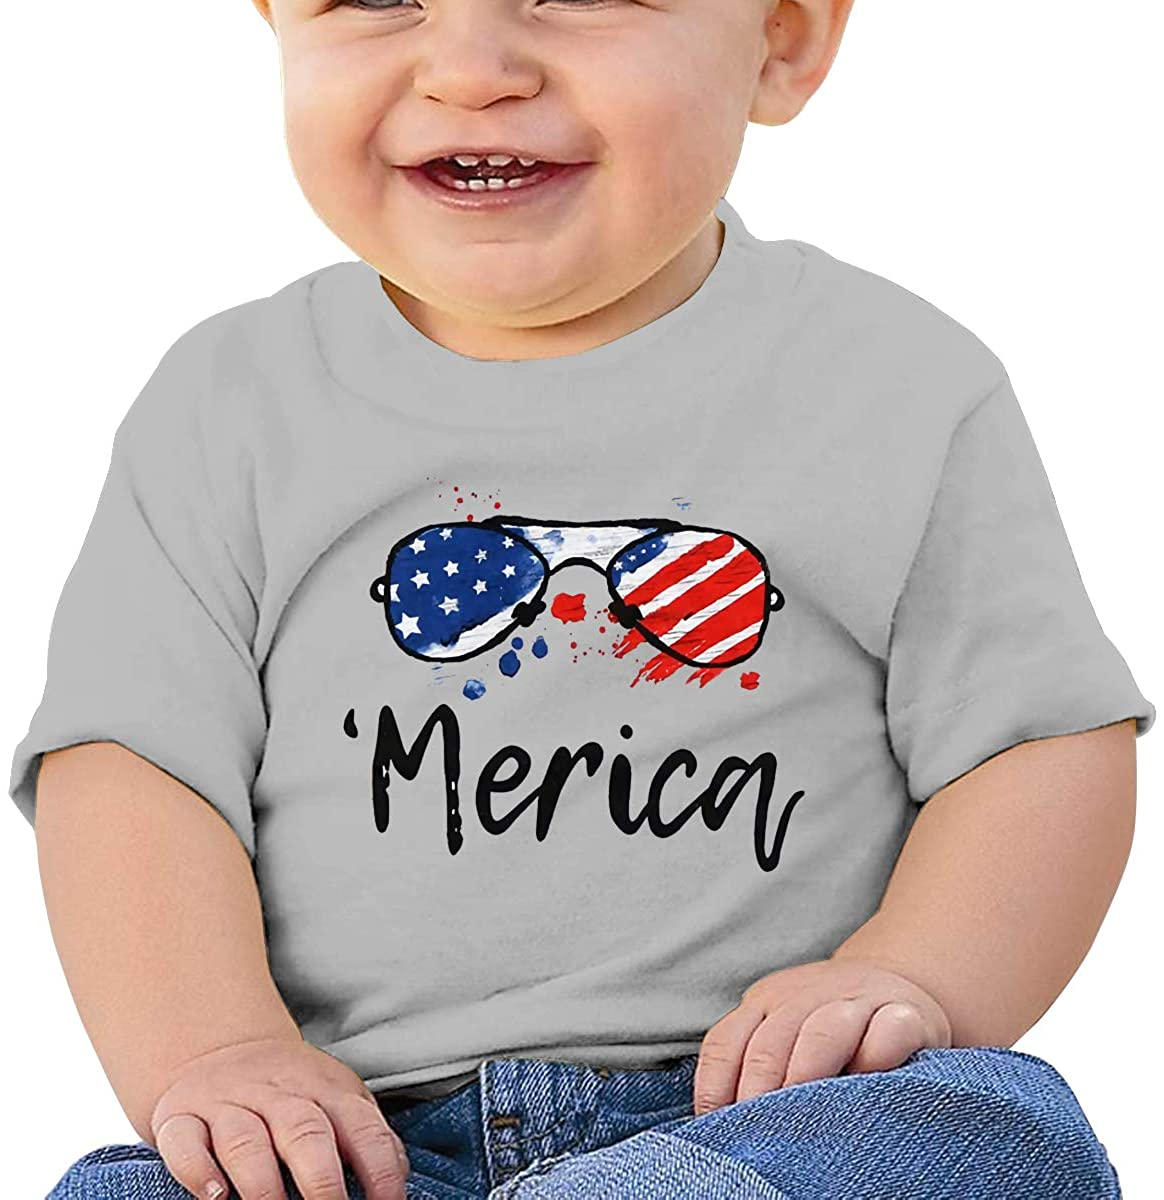 Andea Merica Sunglasses Soft and Comfortable Cotton Baby Short-Sleeved T-Shirt